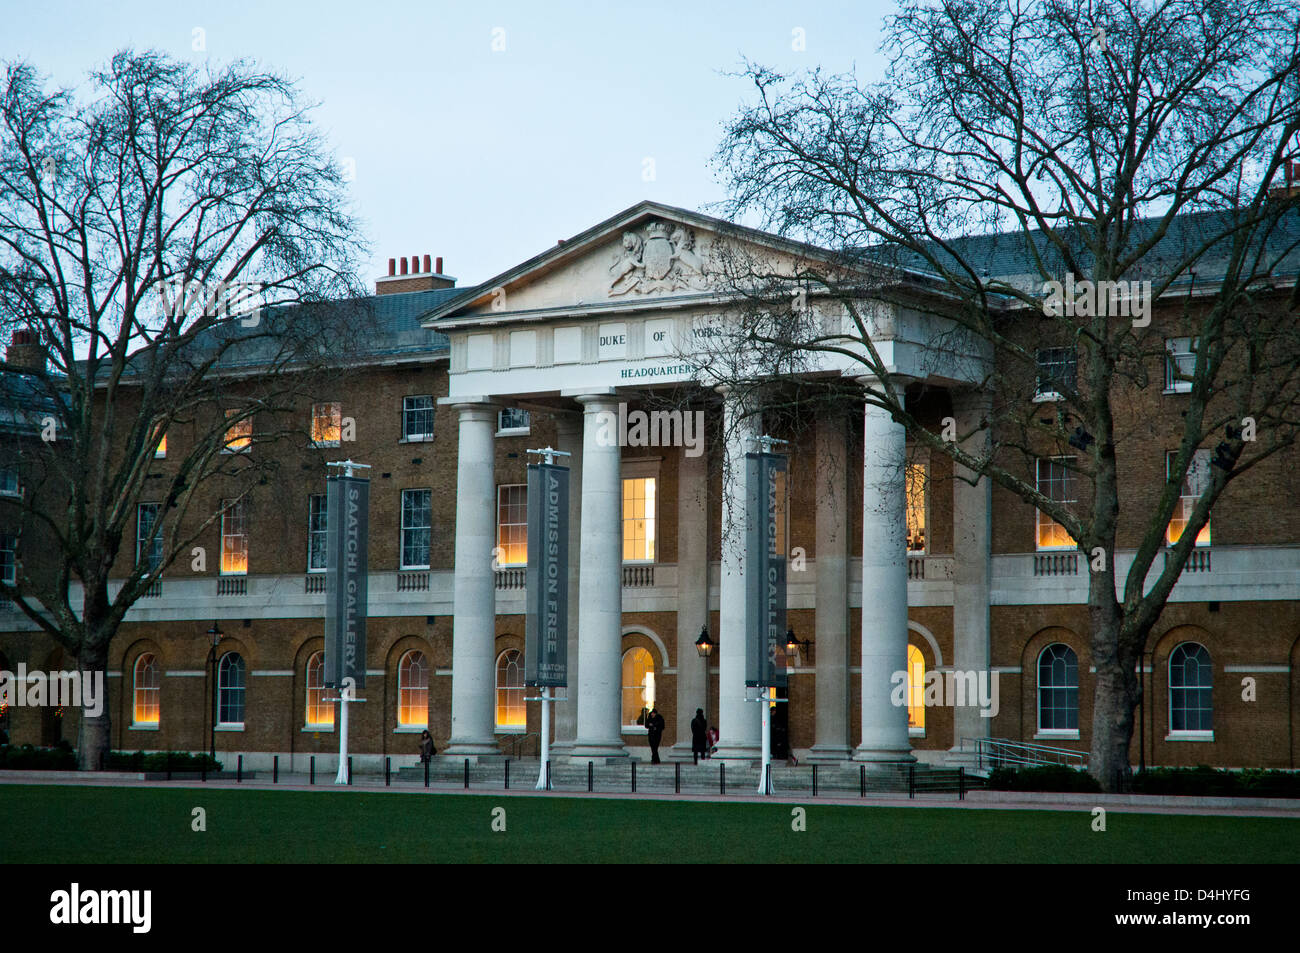 Saatchi Gallery, Duke of Yorks Headquarters, Chelsea, London, SW3, UK - Stock Image